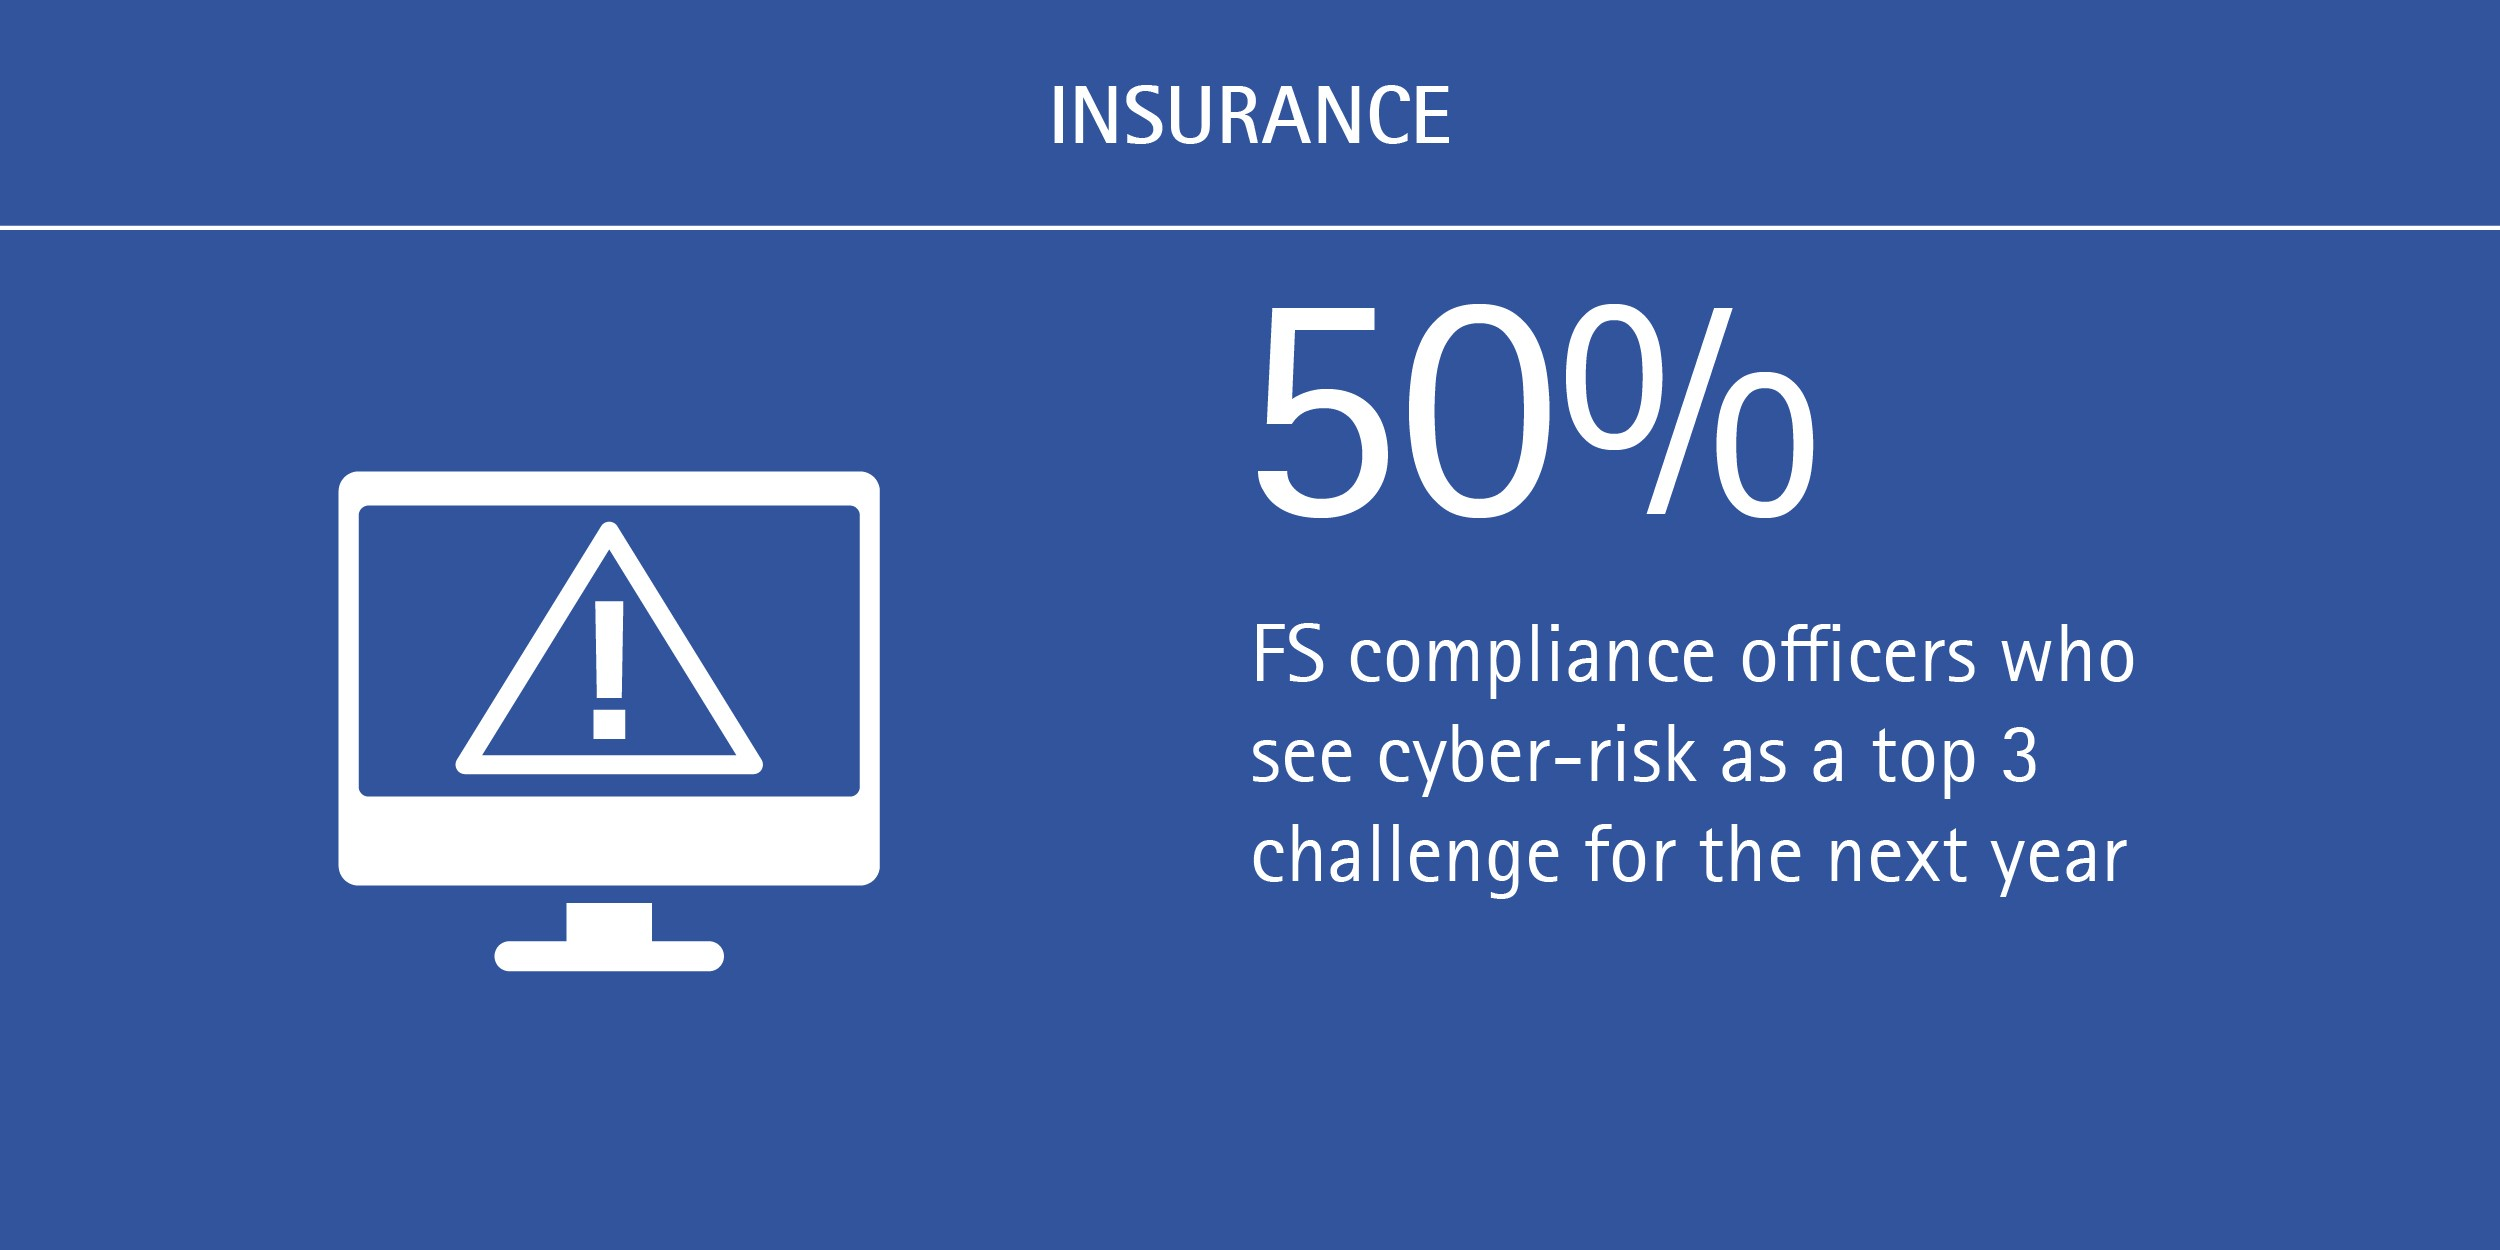 50% of FS compliance officers see cyber-risk as a top 3 challenge for the next year